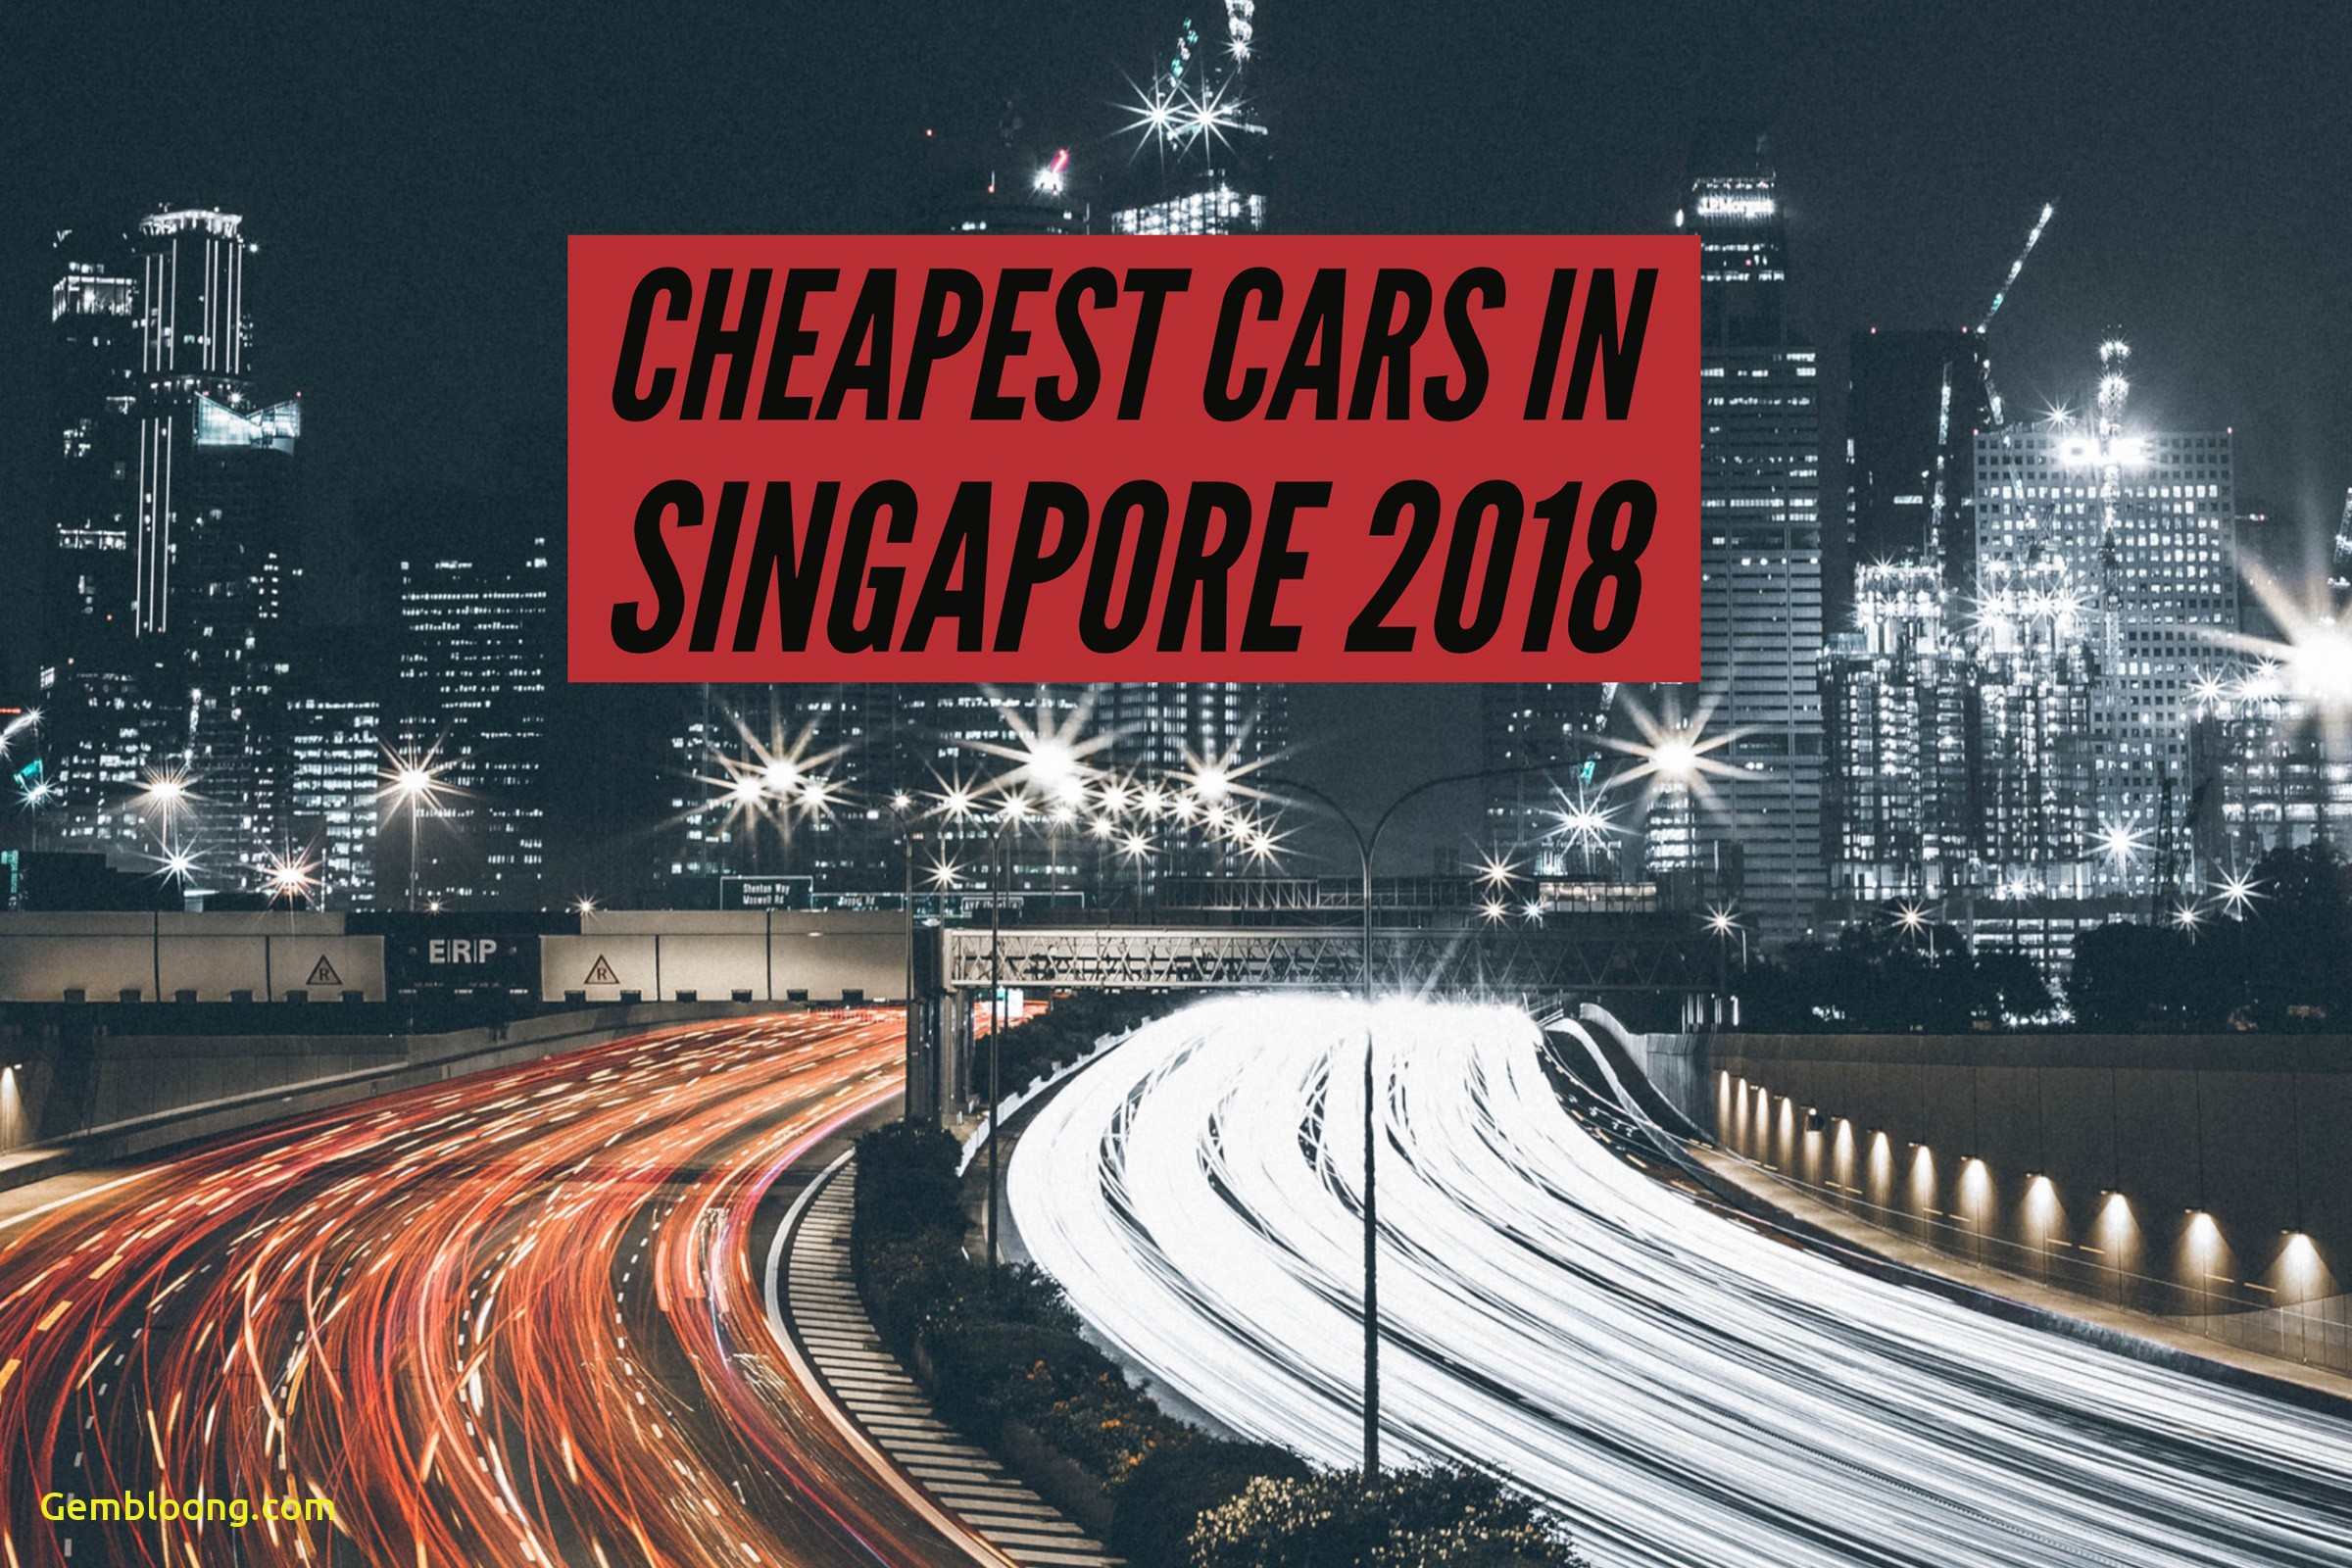 Used Cars for Sale Near Me Under 1000 Fresh Cars In 2018 Here are the 6 Cheapest Cars You Can Buy In